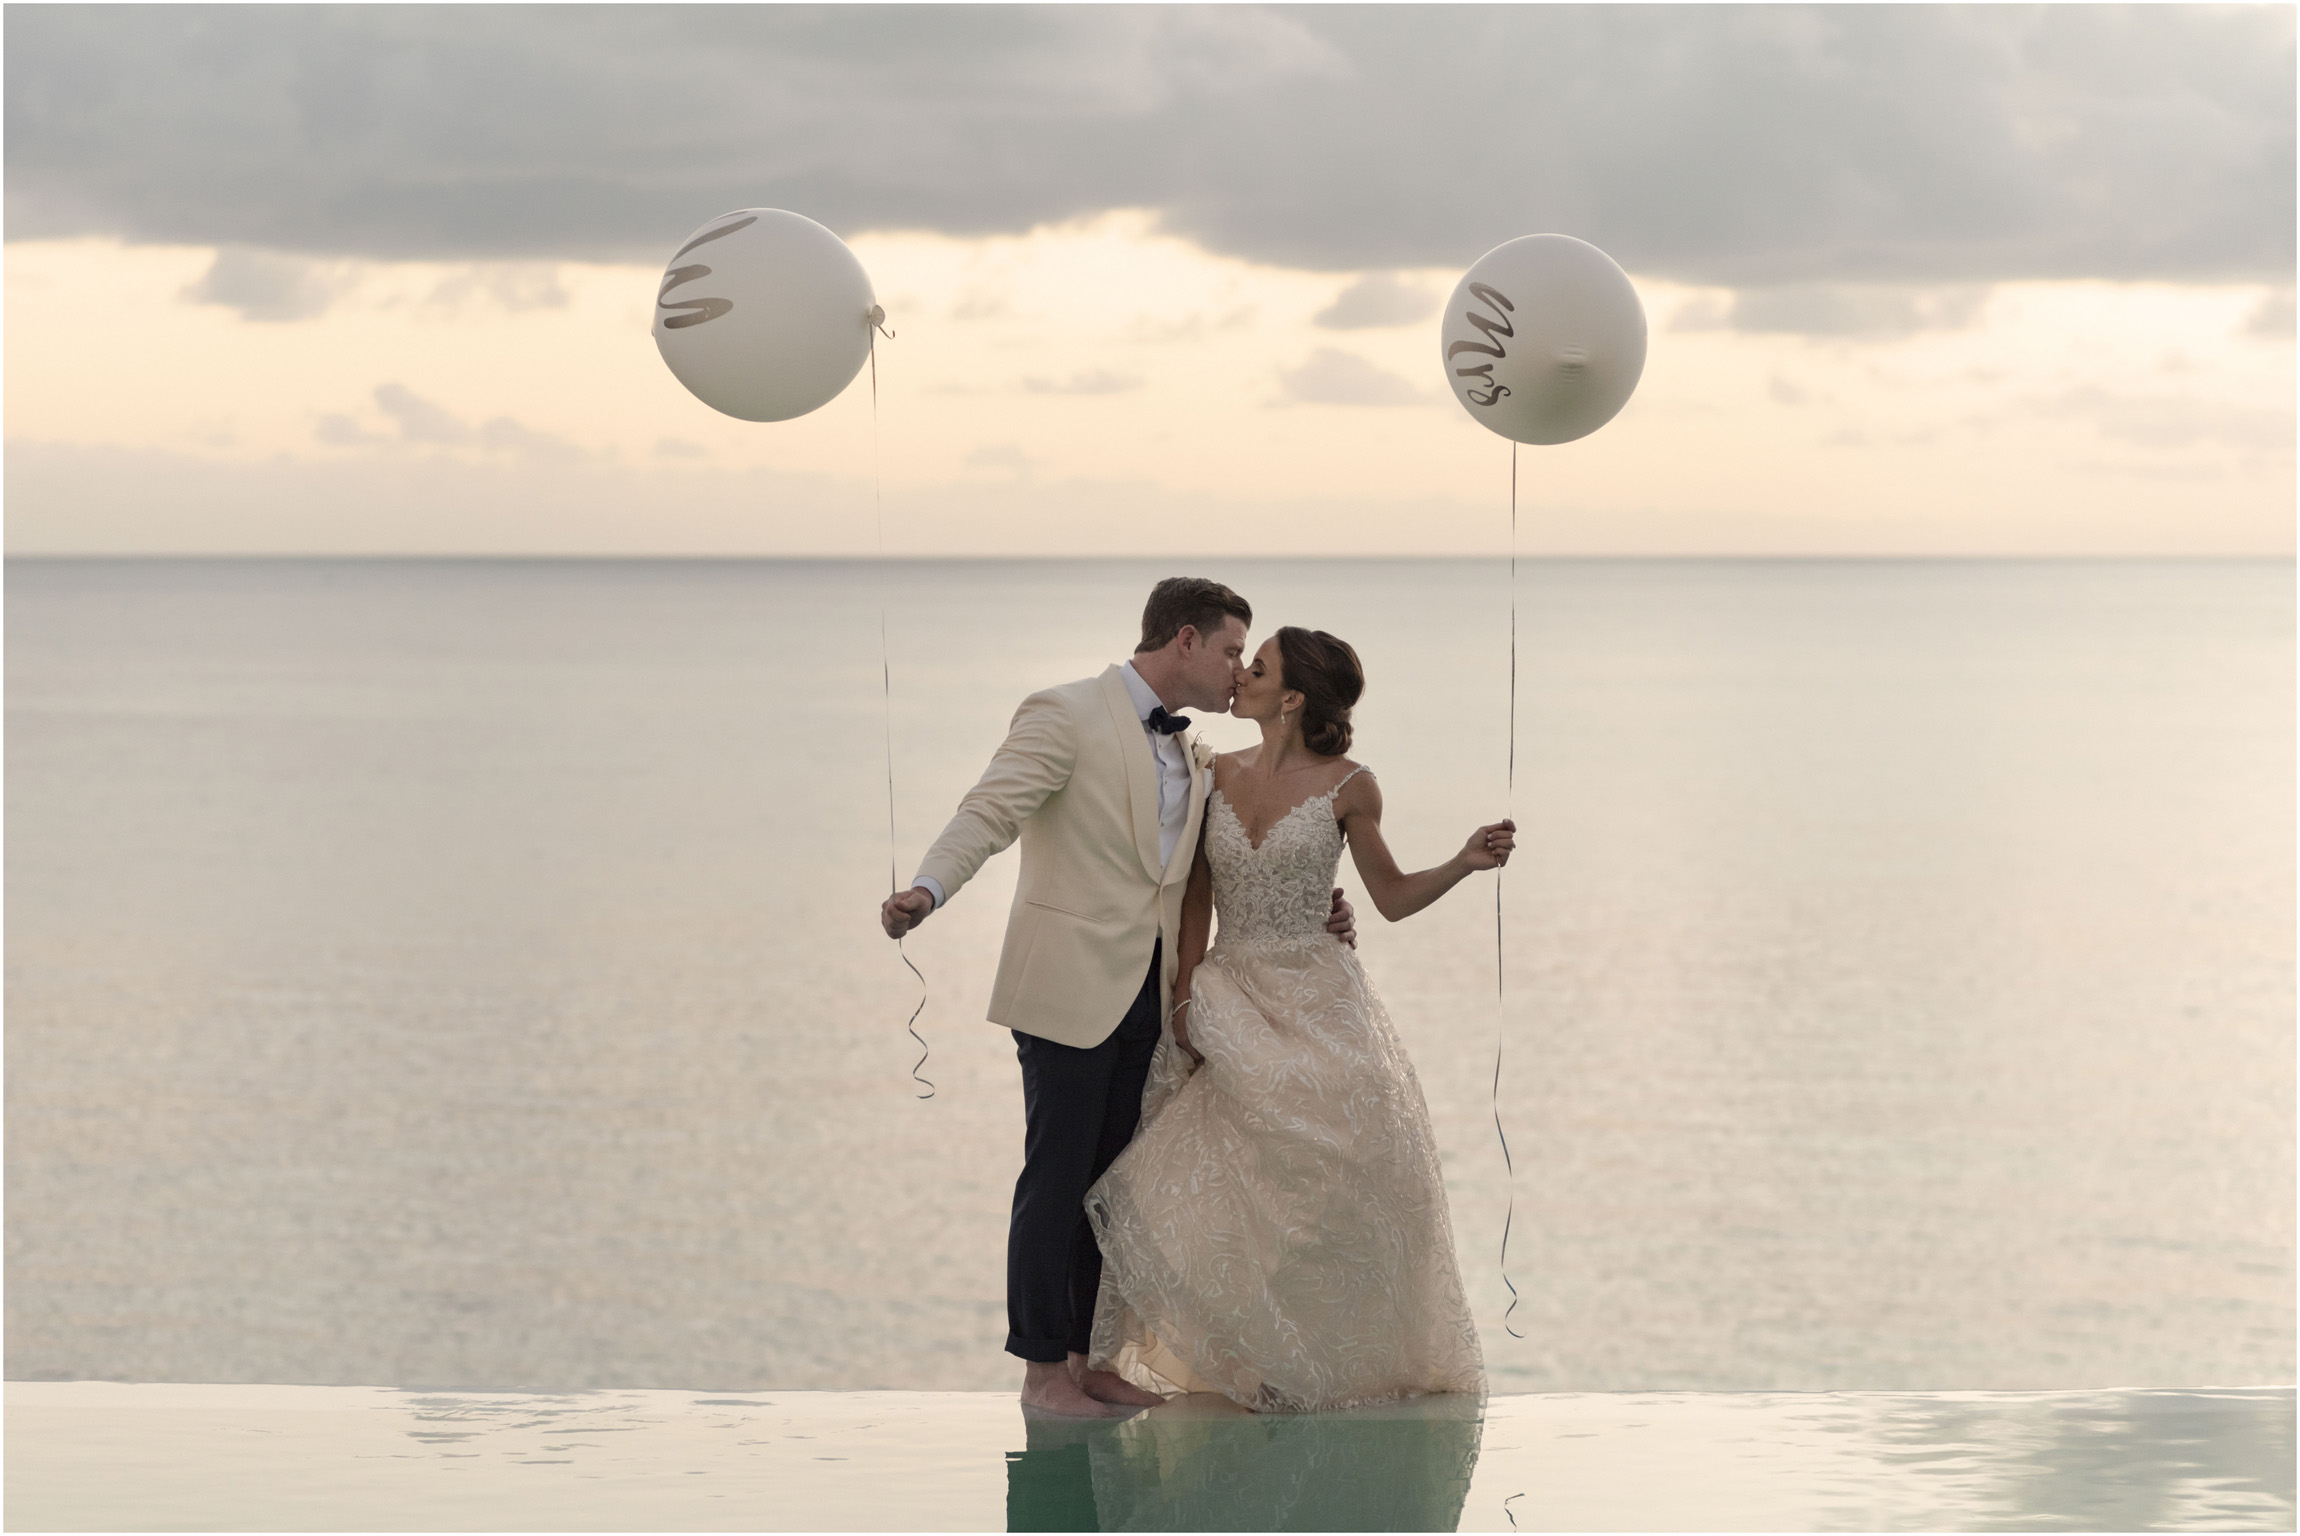 ©Fiander+Foto_Bermuda+Wedding+Photographer_The+Reefs_Taylor_Tedd_149.jpg